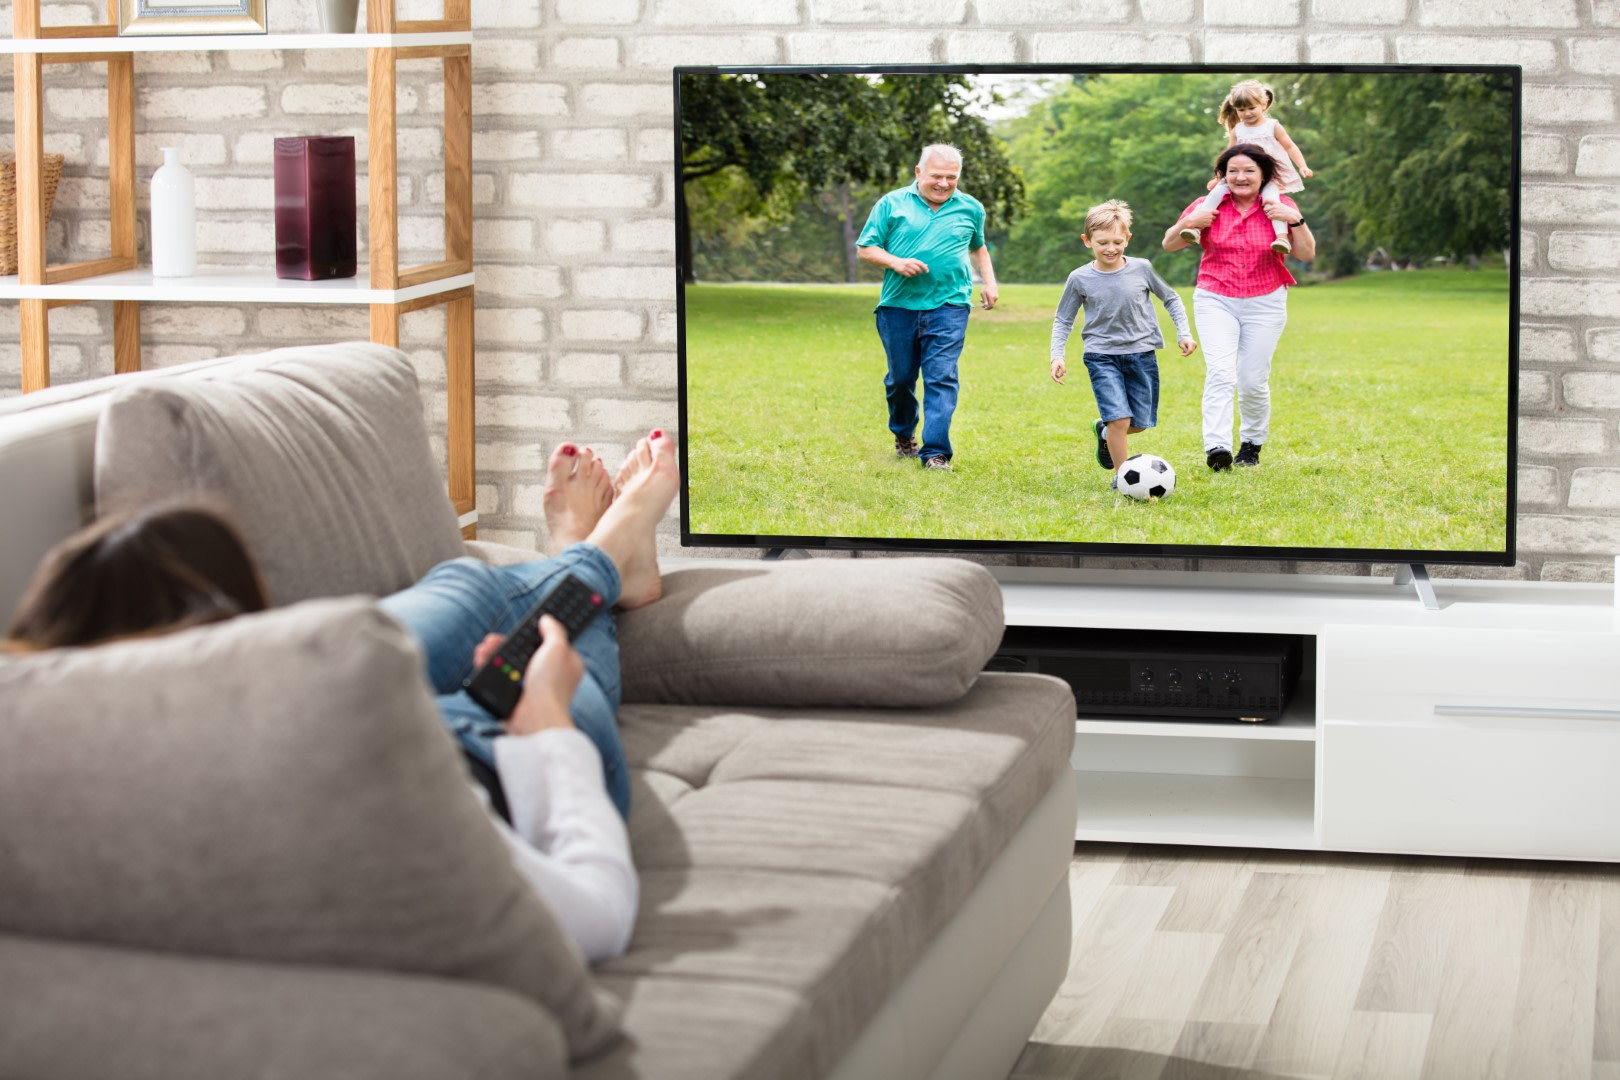 An image related to Top TCL Roku Smart TVs